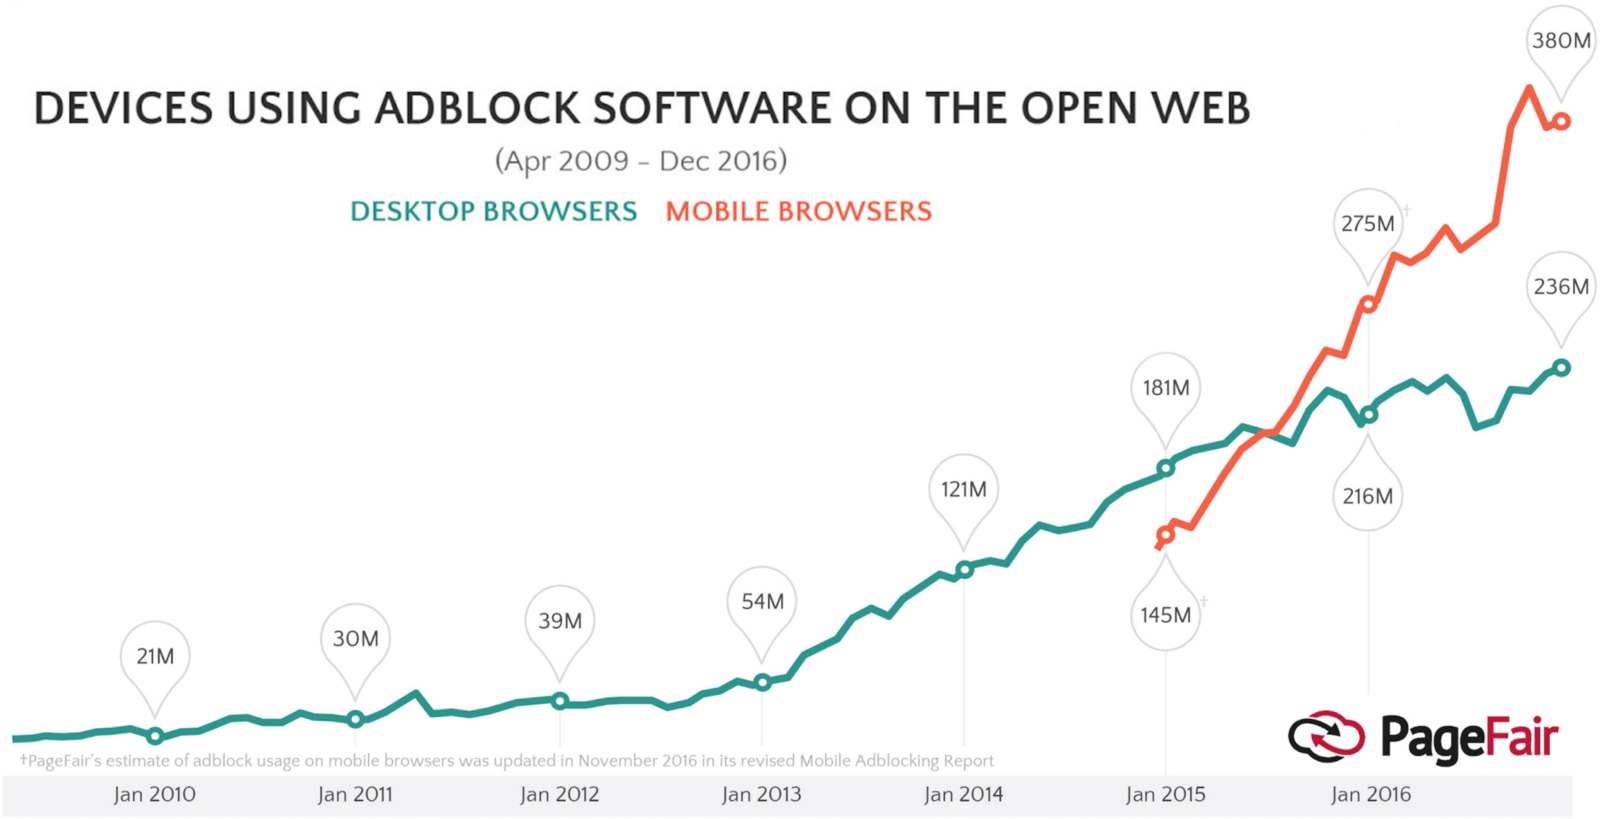 Number of devices using ad block software